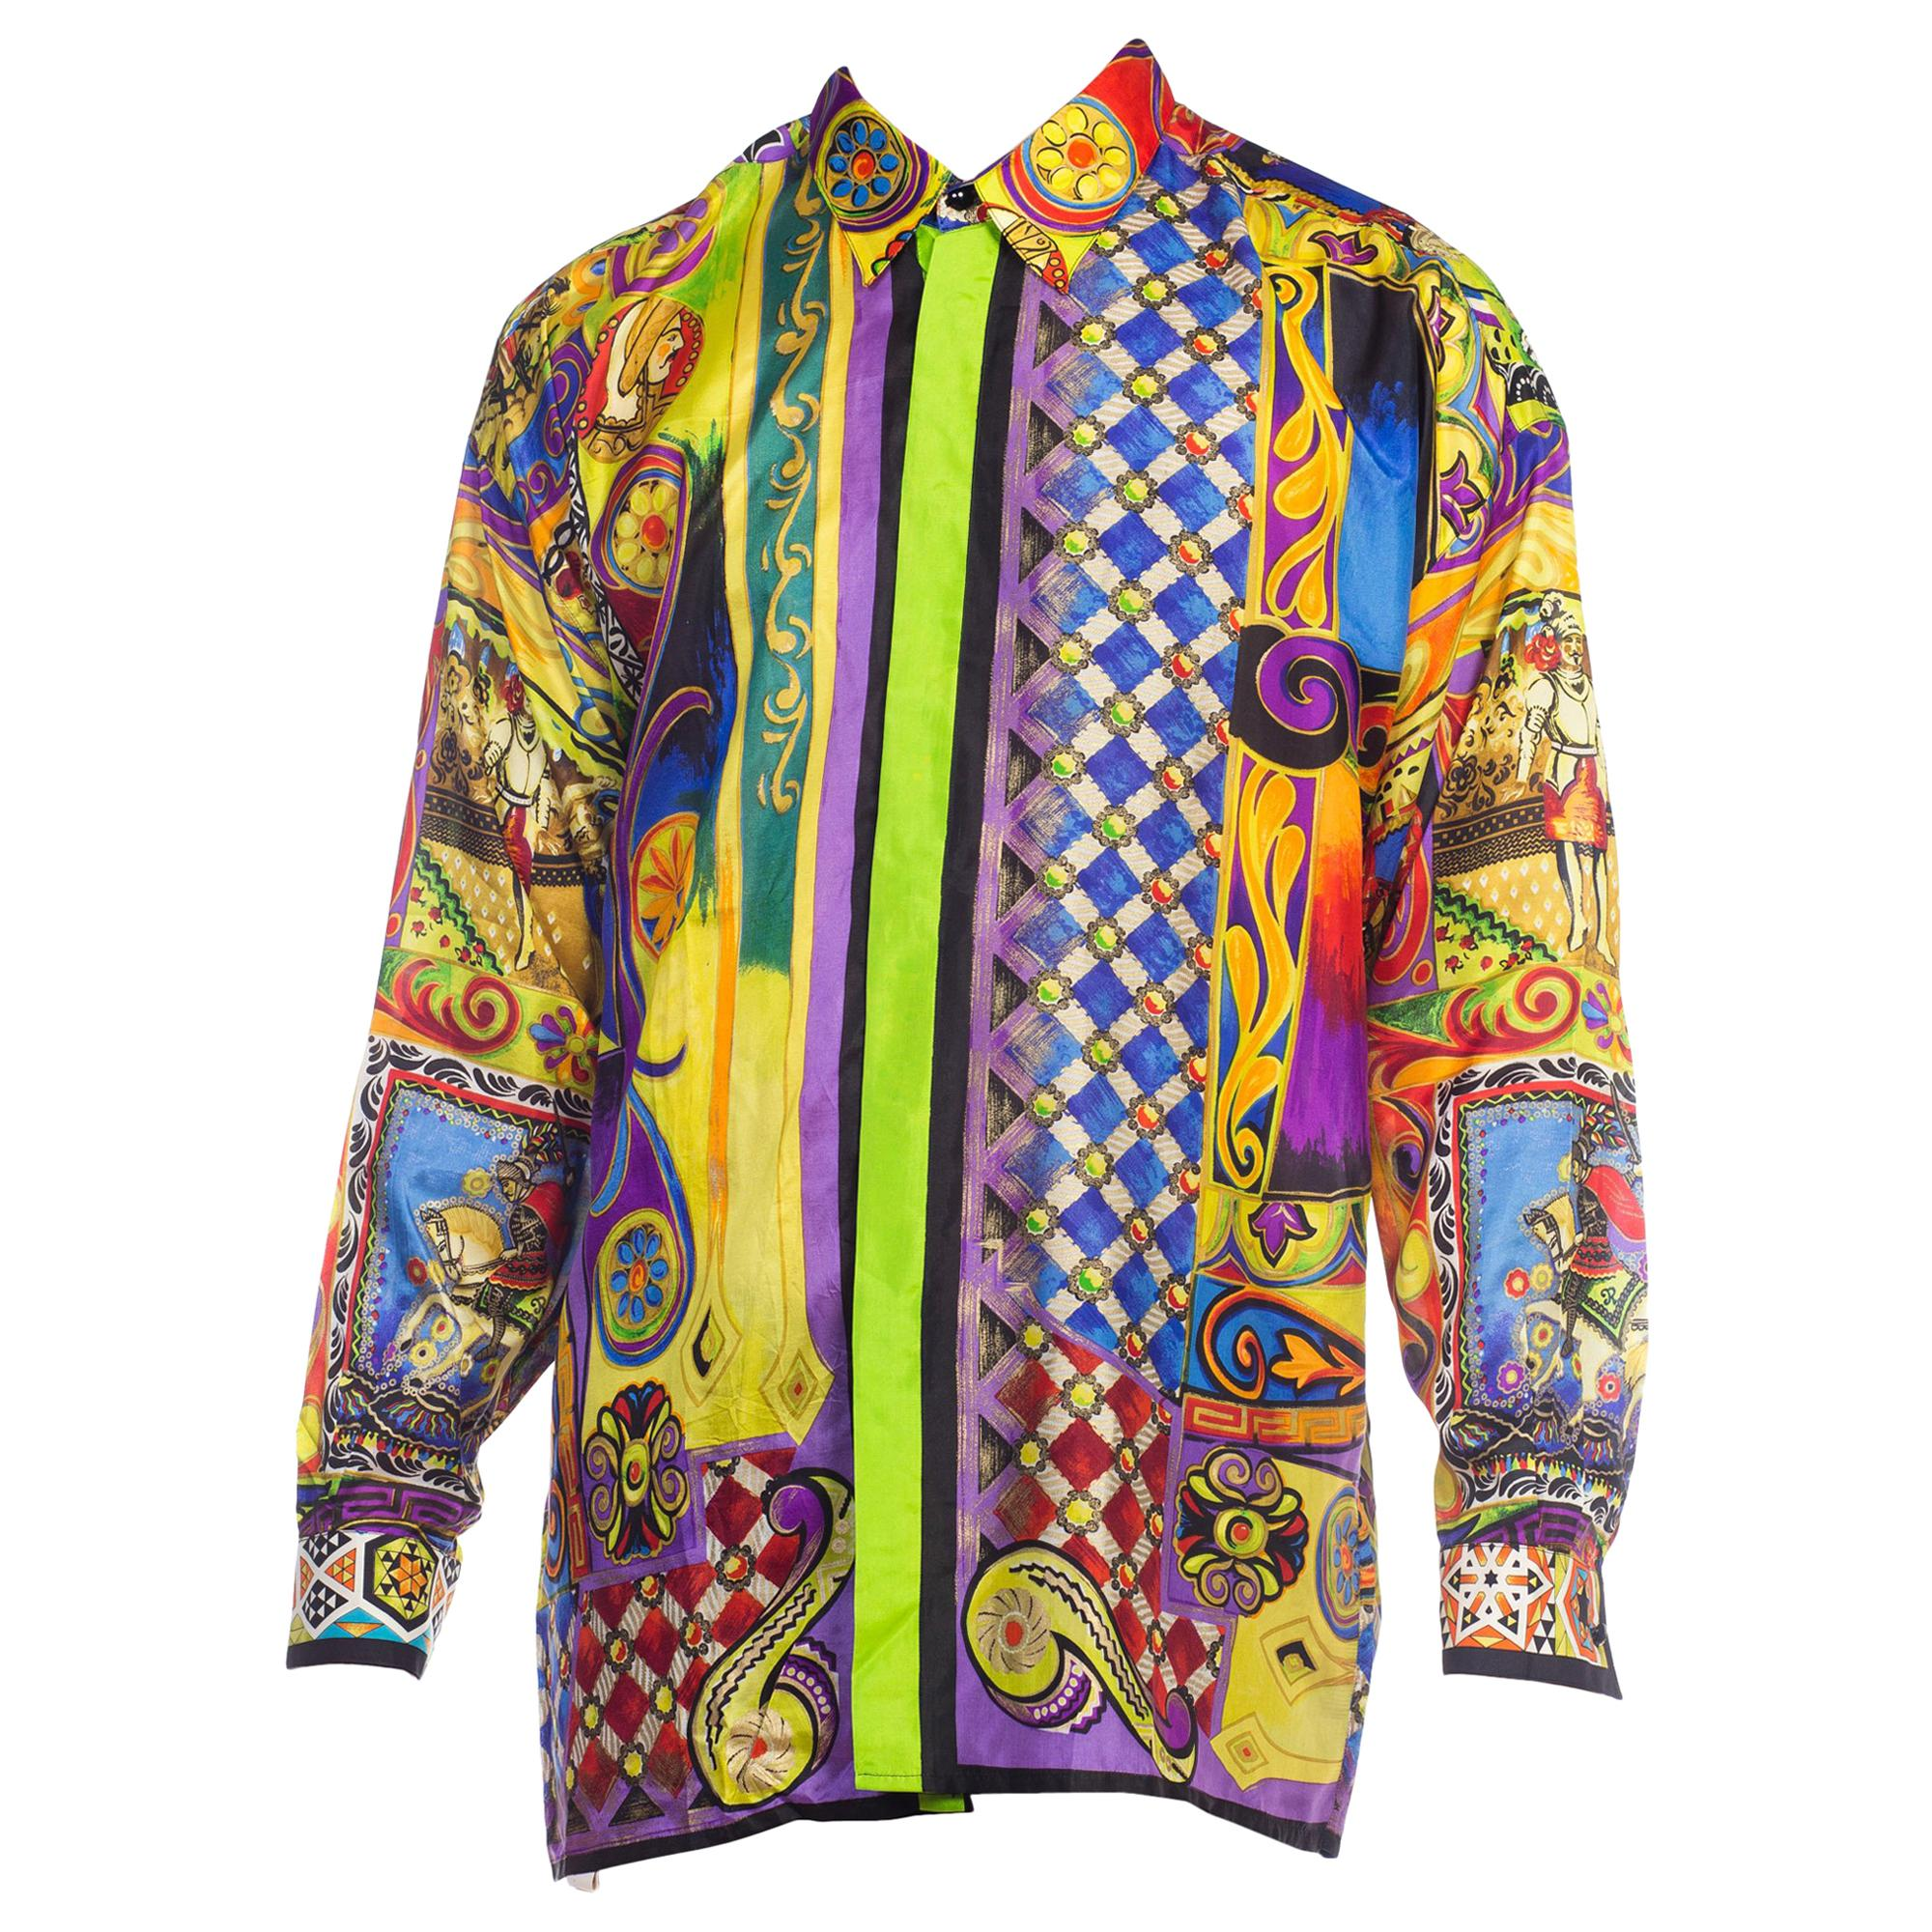 b541ad4bf 1990s Atelier Versace Men's Silk Printed Crocodile and Medusa Shirt with  Knights at 1stdibs